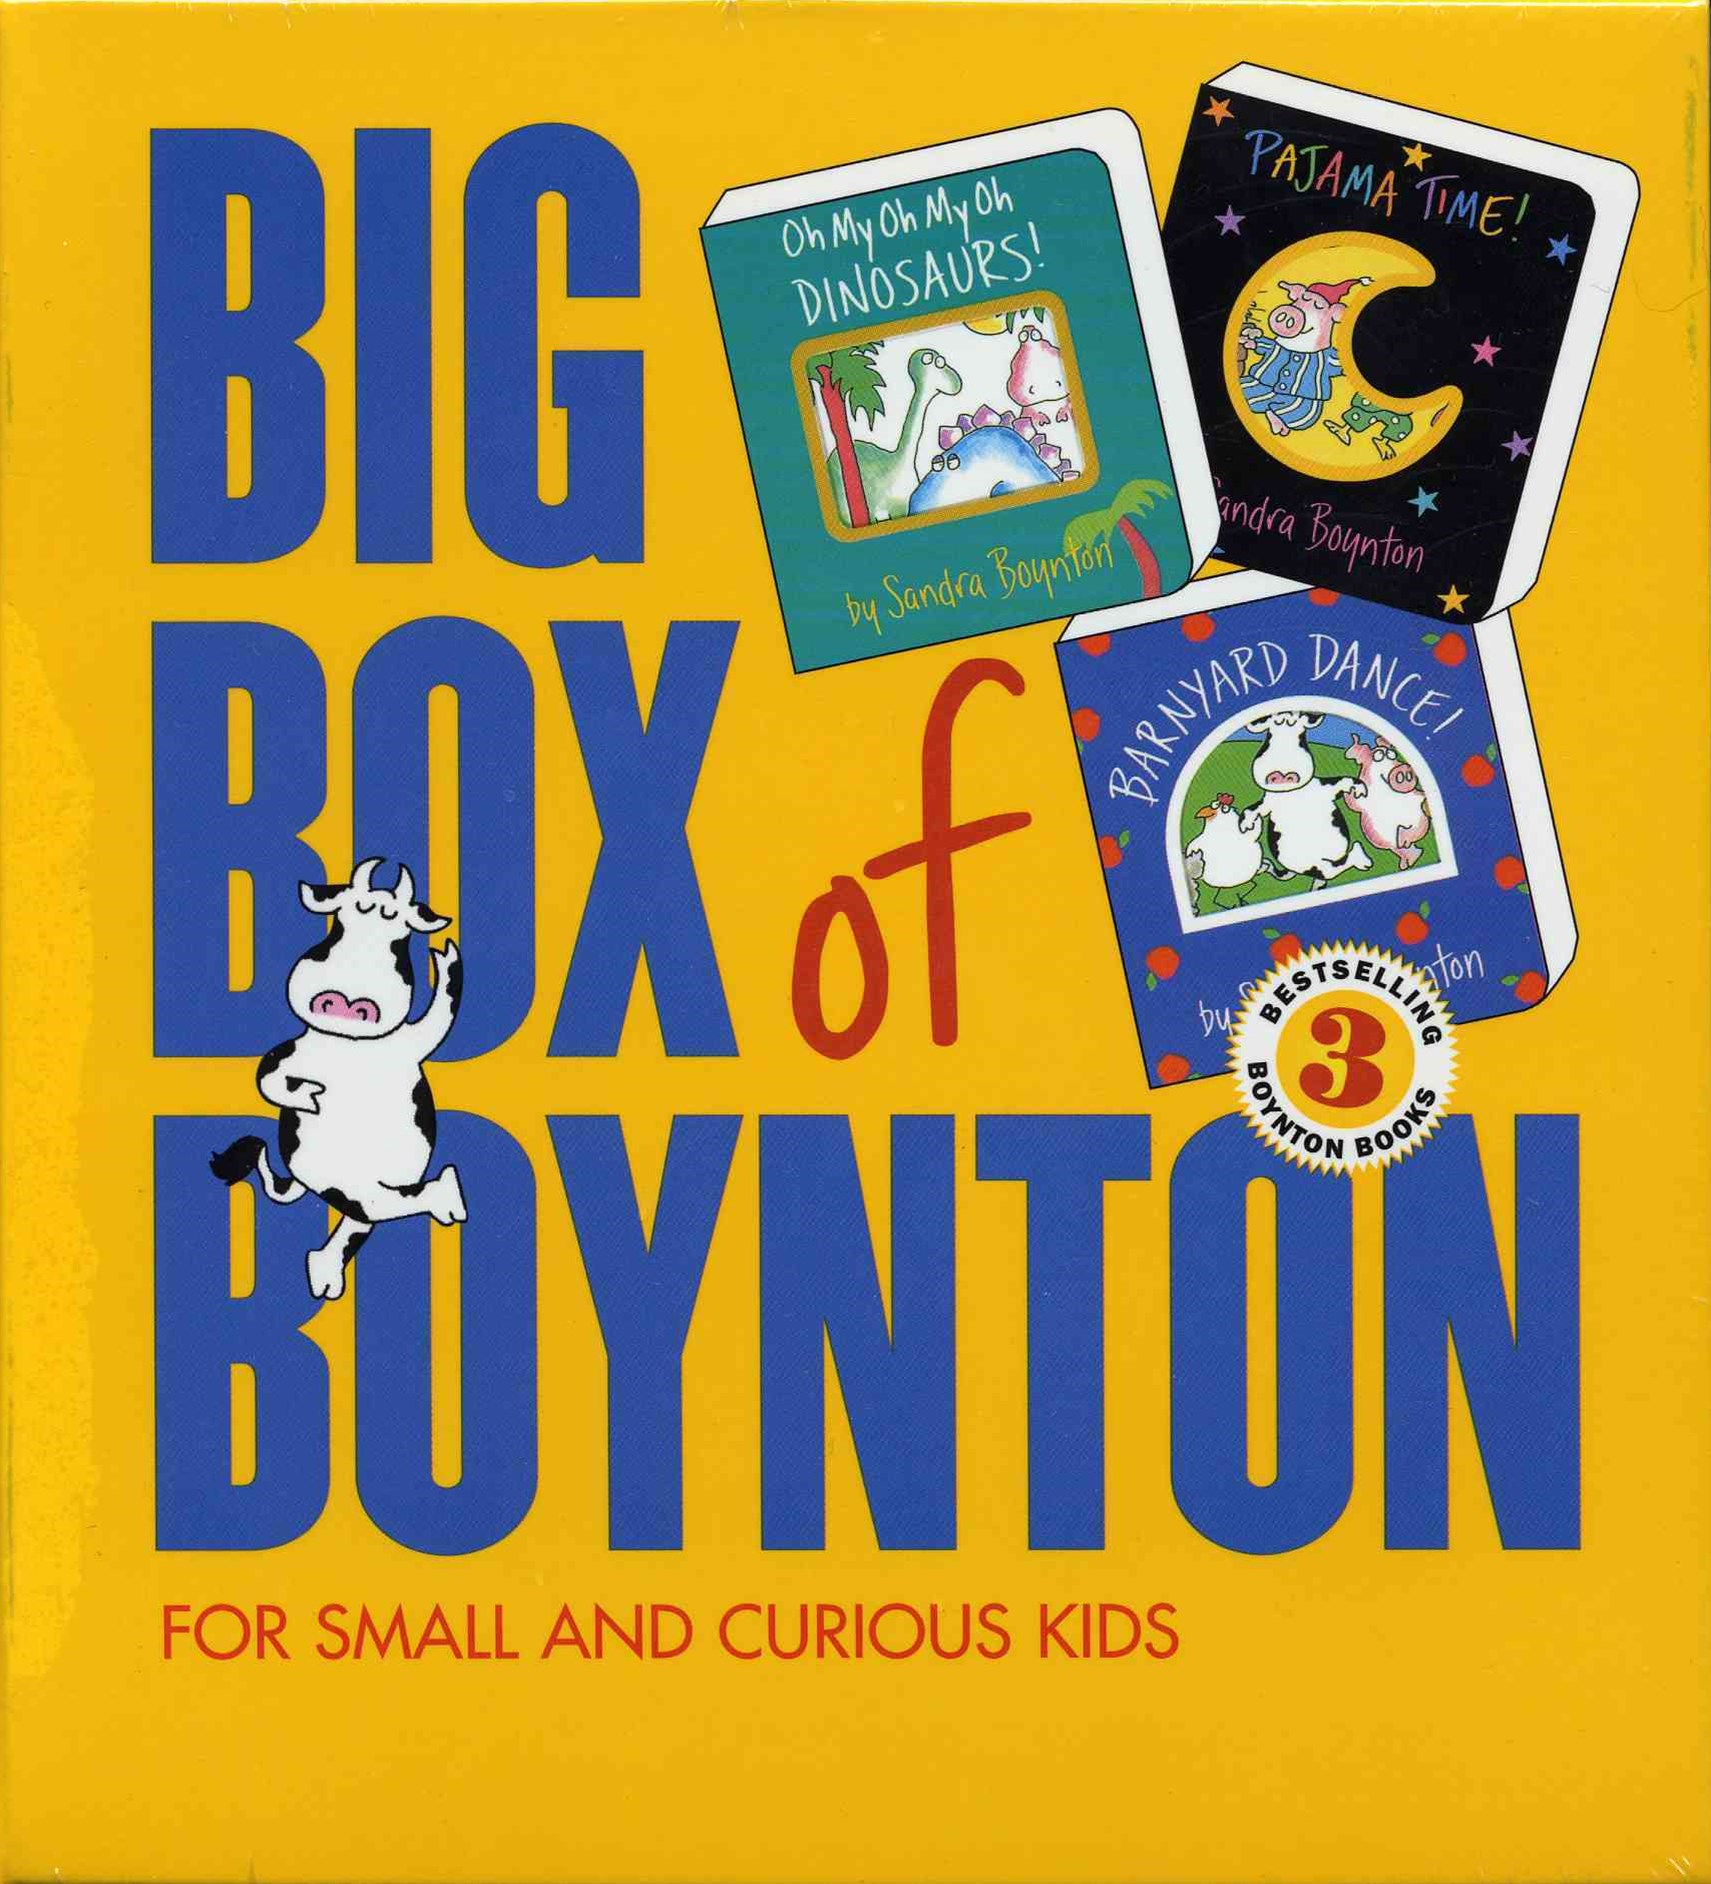 Big Box of Boynton: WITH &quote;Barnyard Dance!&quote; AND &quote;Oh My, Oh Dinosaurs!&quote; AND &quote;Pajama Time!&quote;